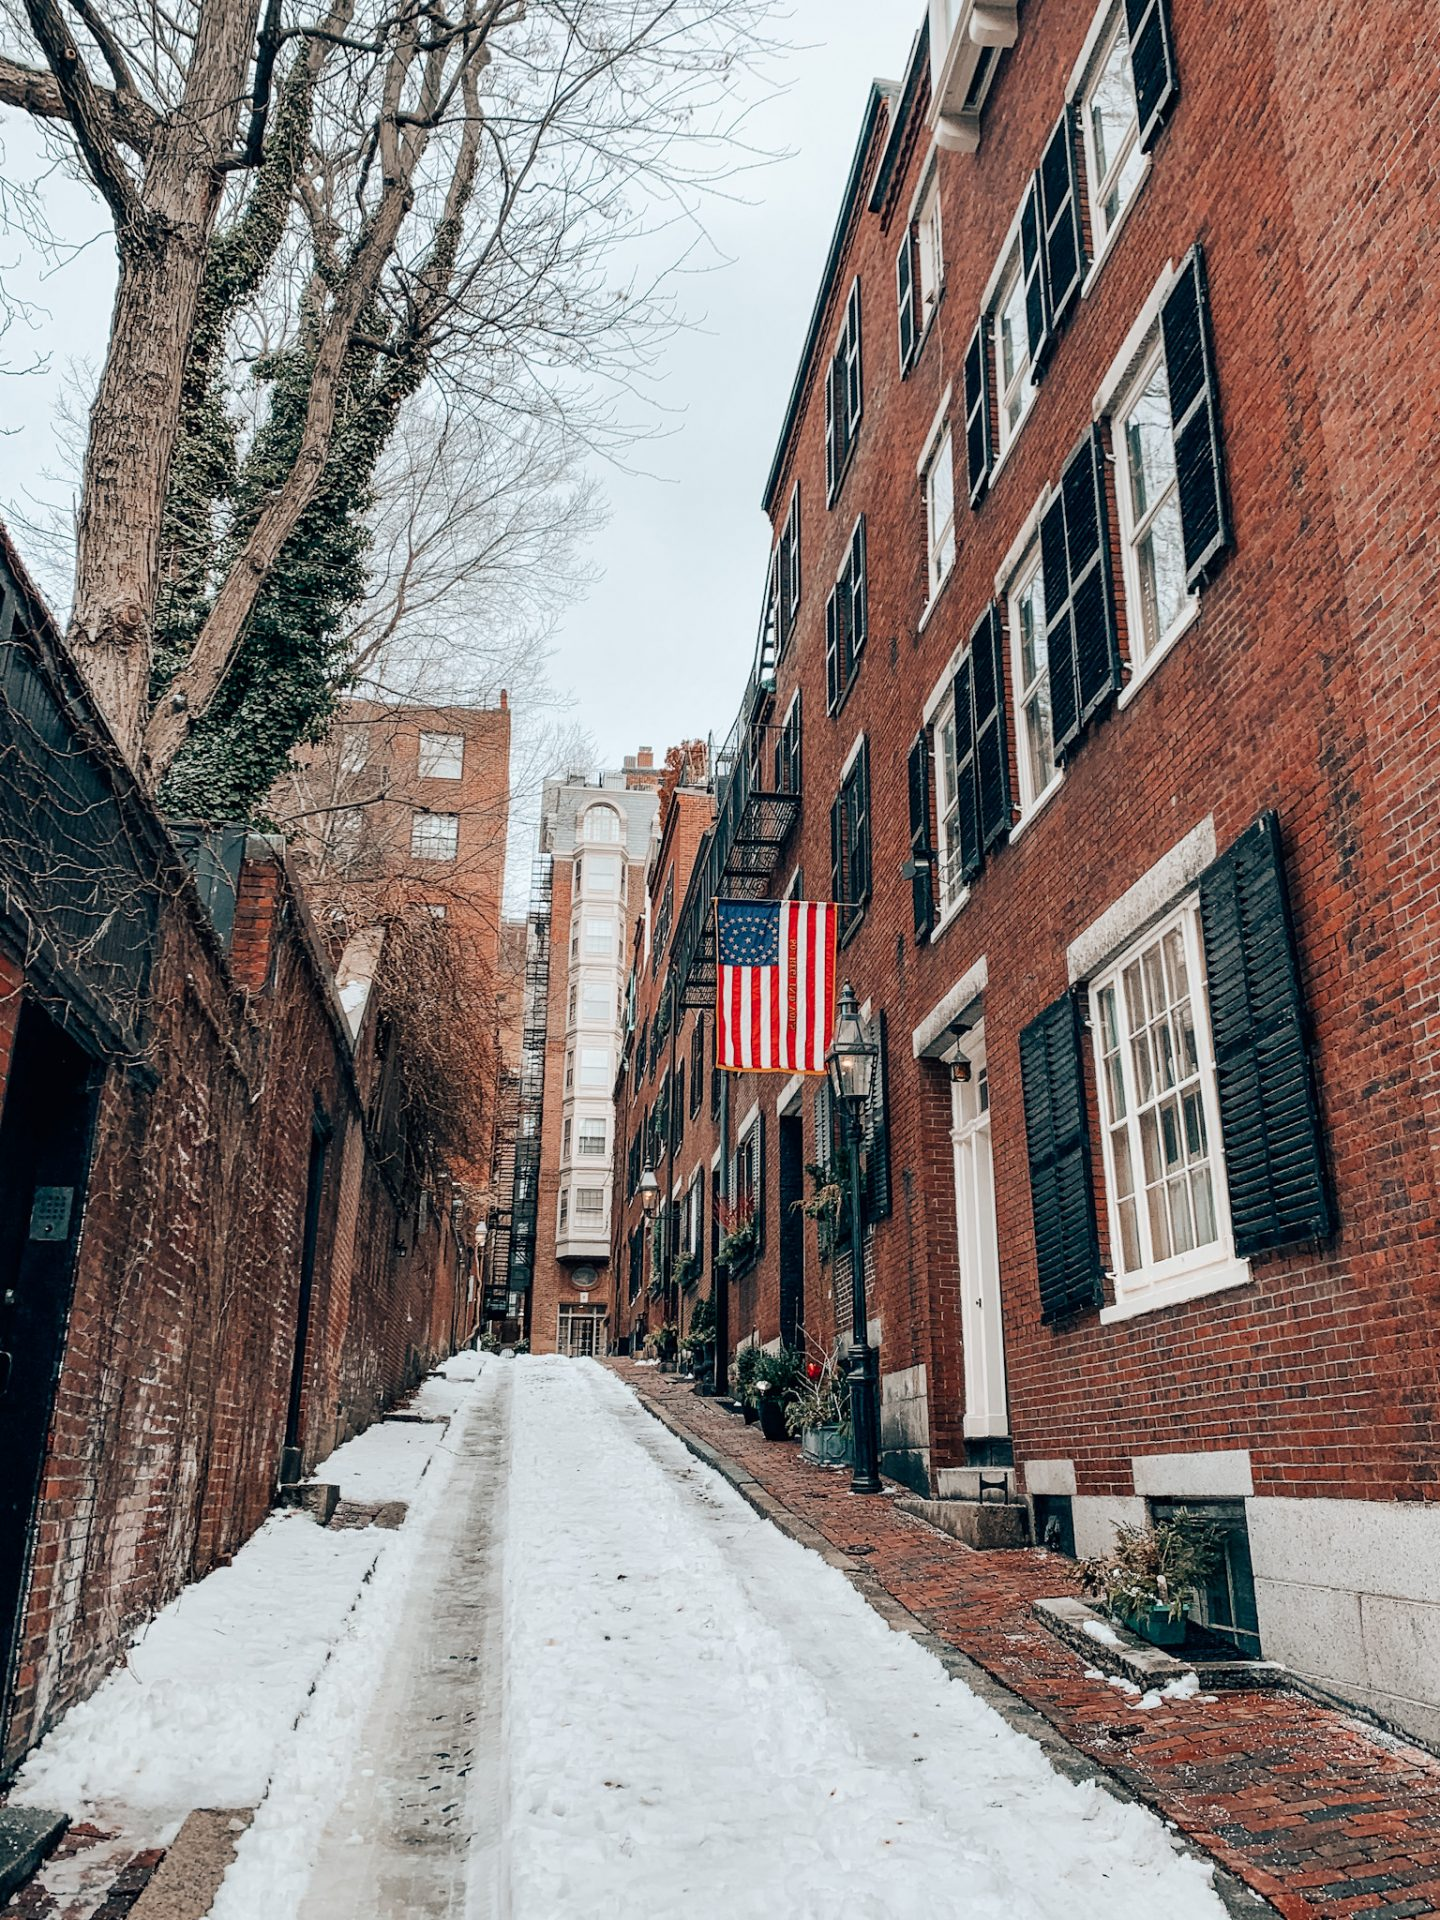 Acorn Street is one of the most Instagrammable locations in Boston, MA